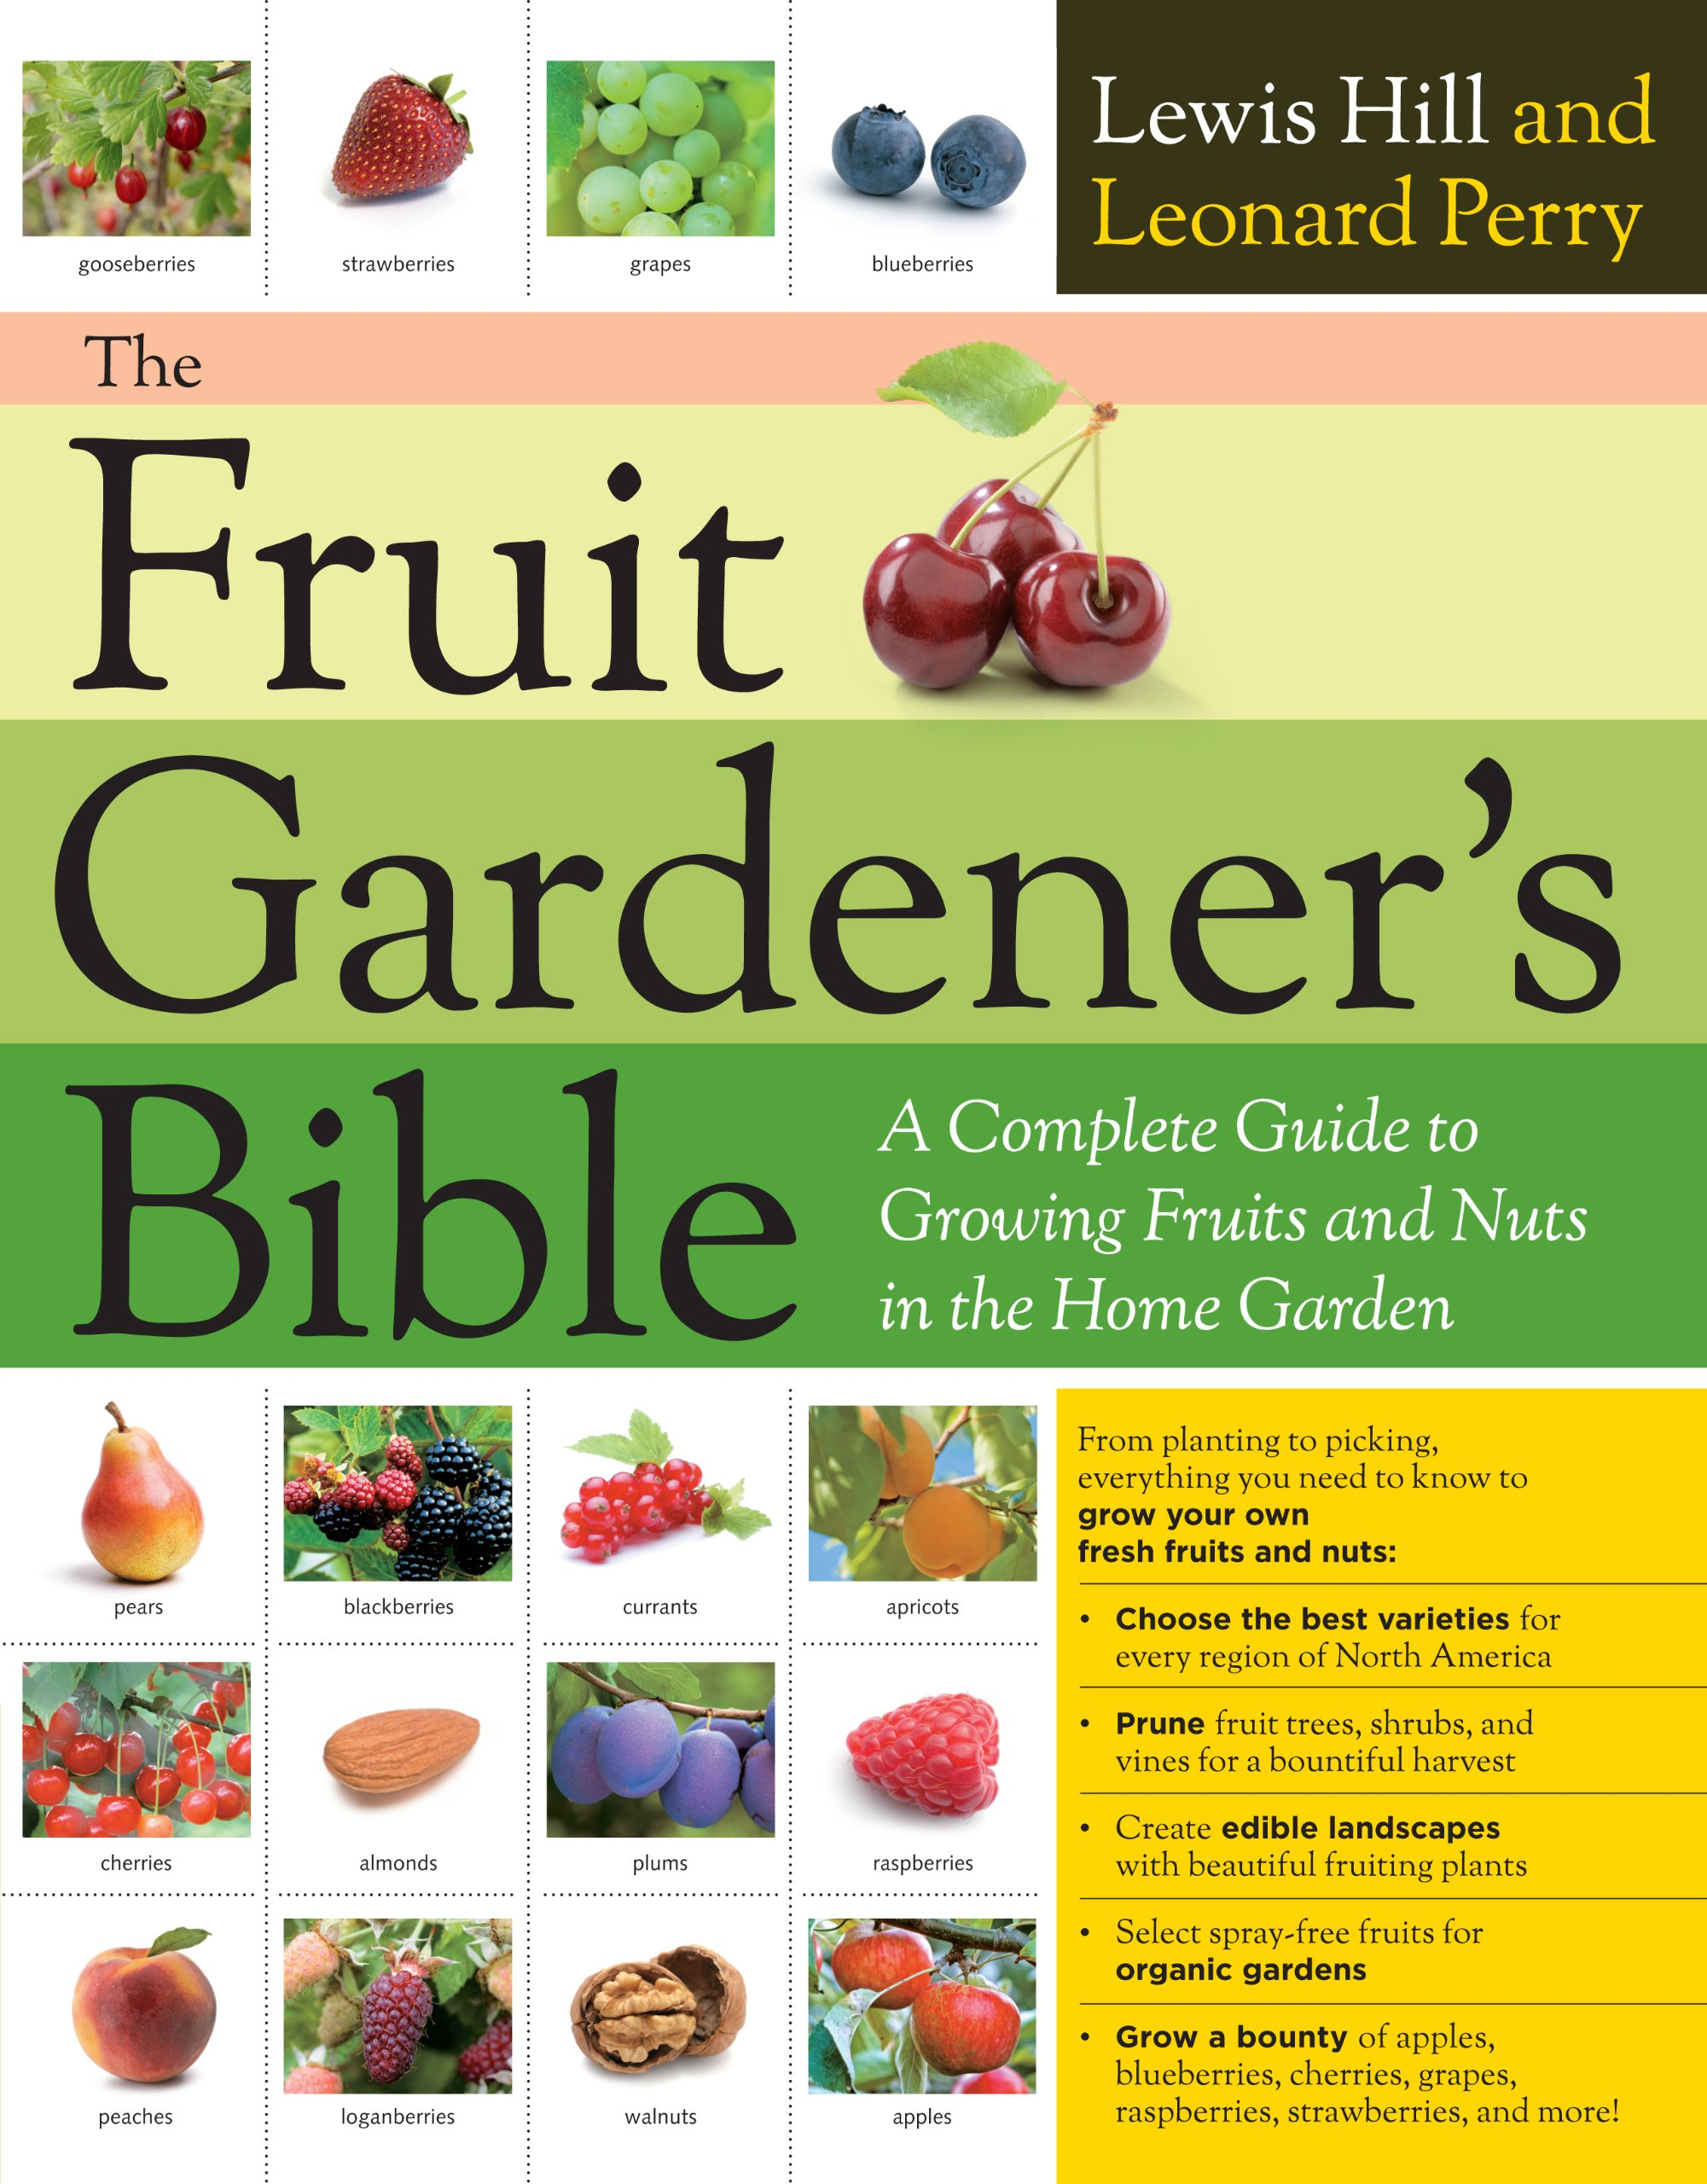 the fruit gardeners bible a complete guide to growing fruits and nuts in the home garden lewis hill leonard perry 9781603425674 amazoncom books - Trees For Home Garden